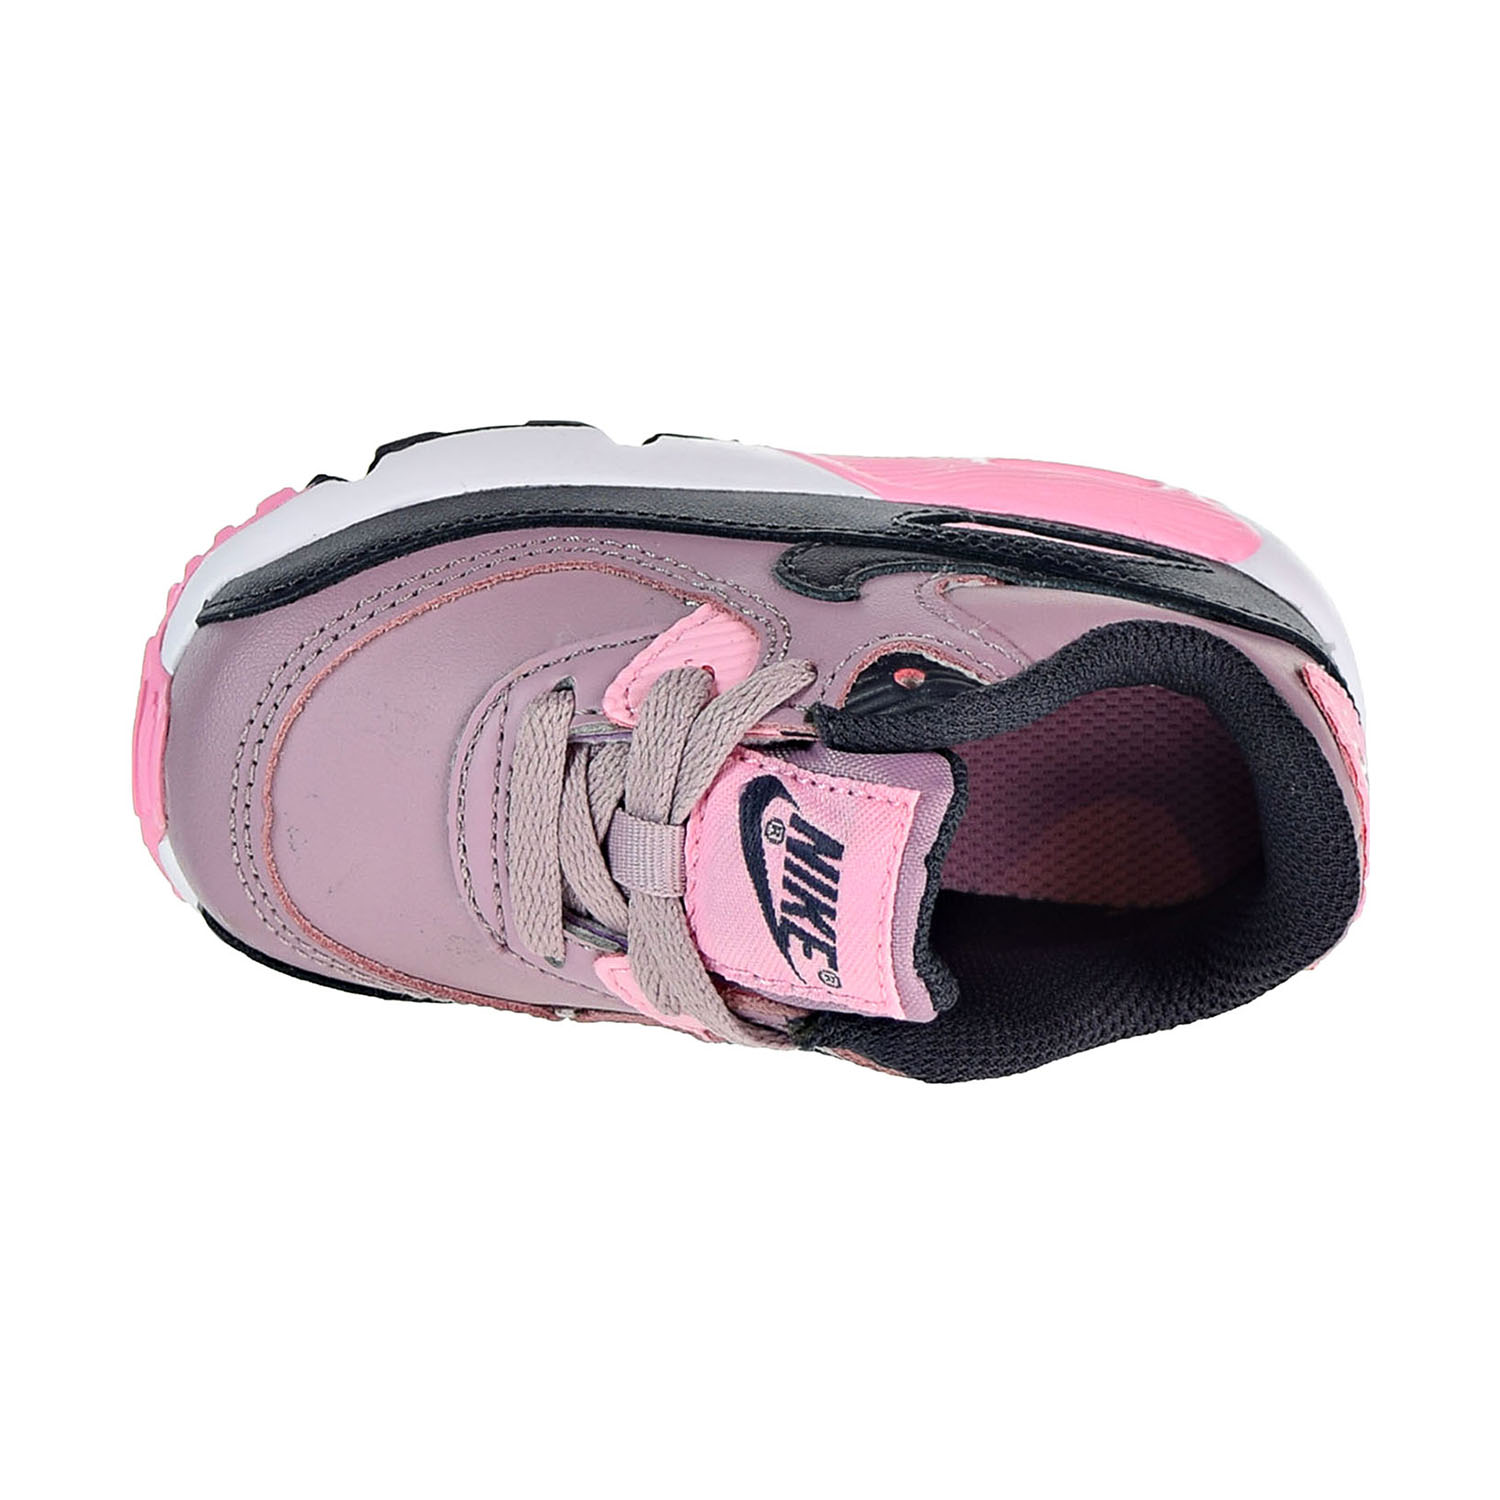 check out ee4ed 73216 Nike Air Max 90 Leather Toddler s Shoes Elemental Rose 833379-602